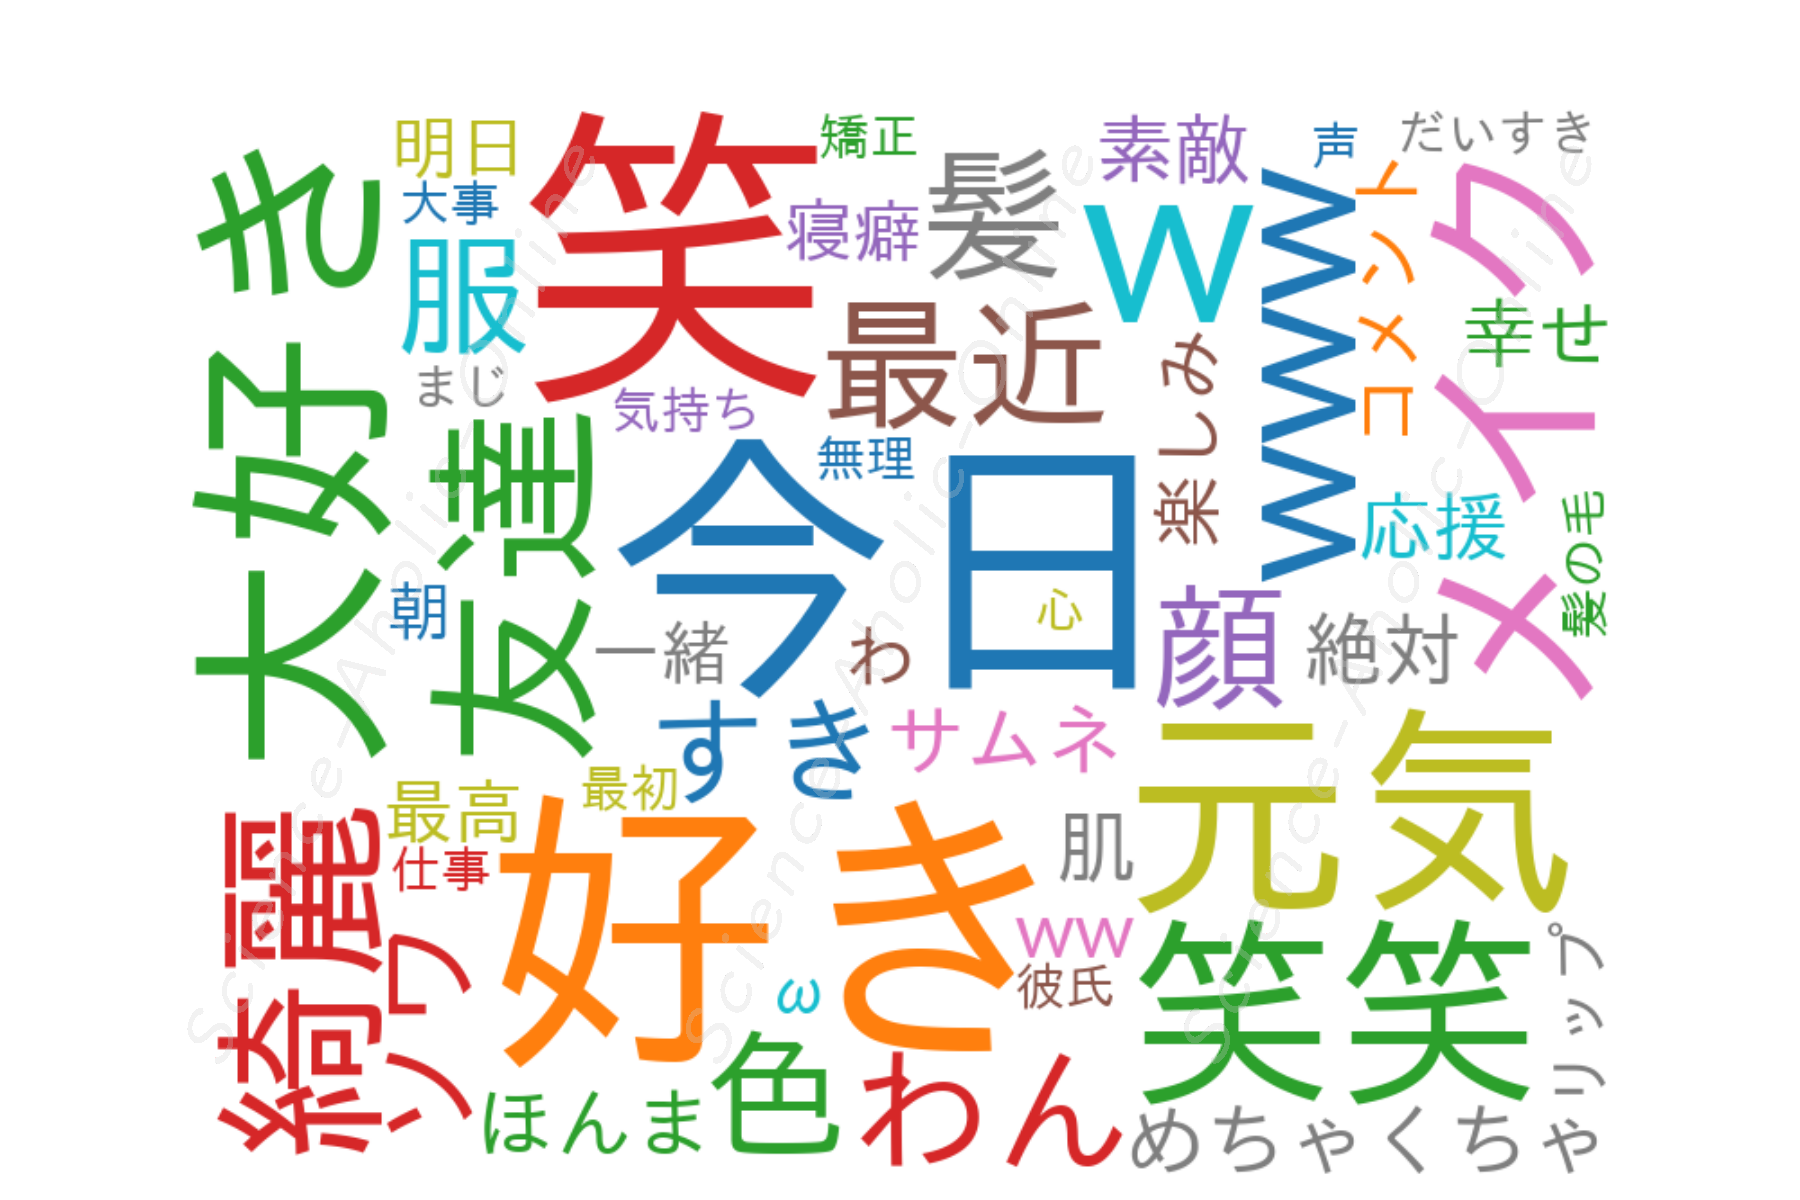 https://science-aholic-online.com/wp-content/uploads/2020/08/wordcloud_そわんわん.png